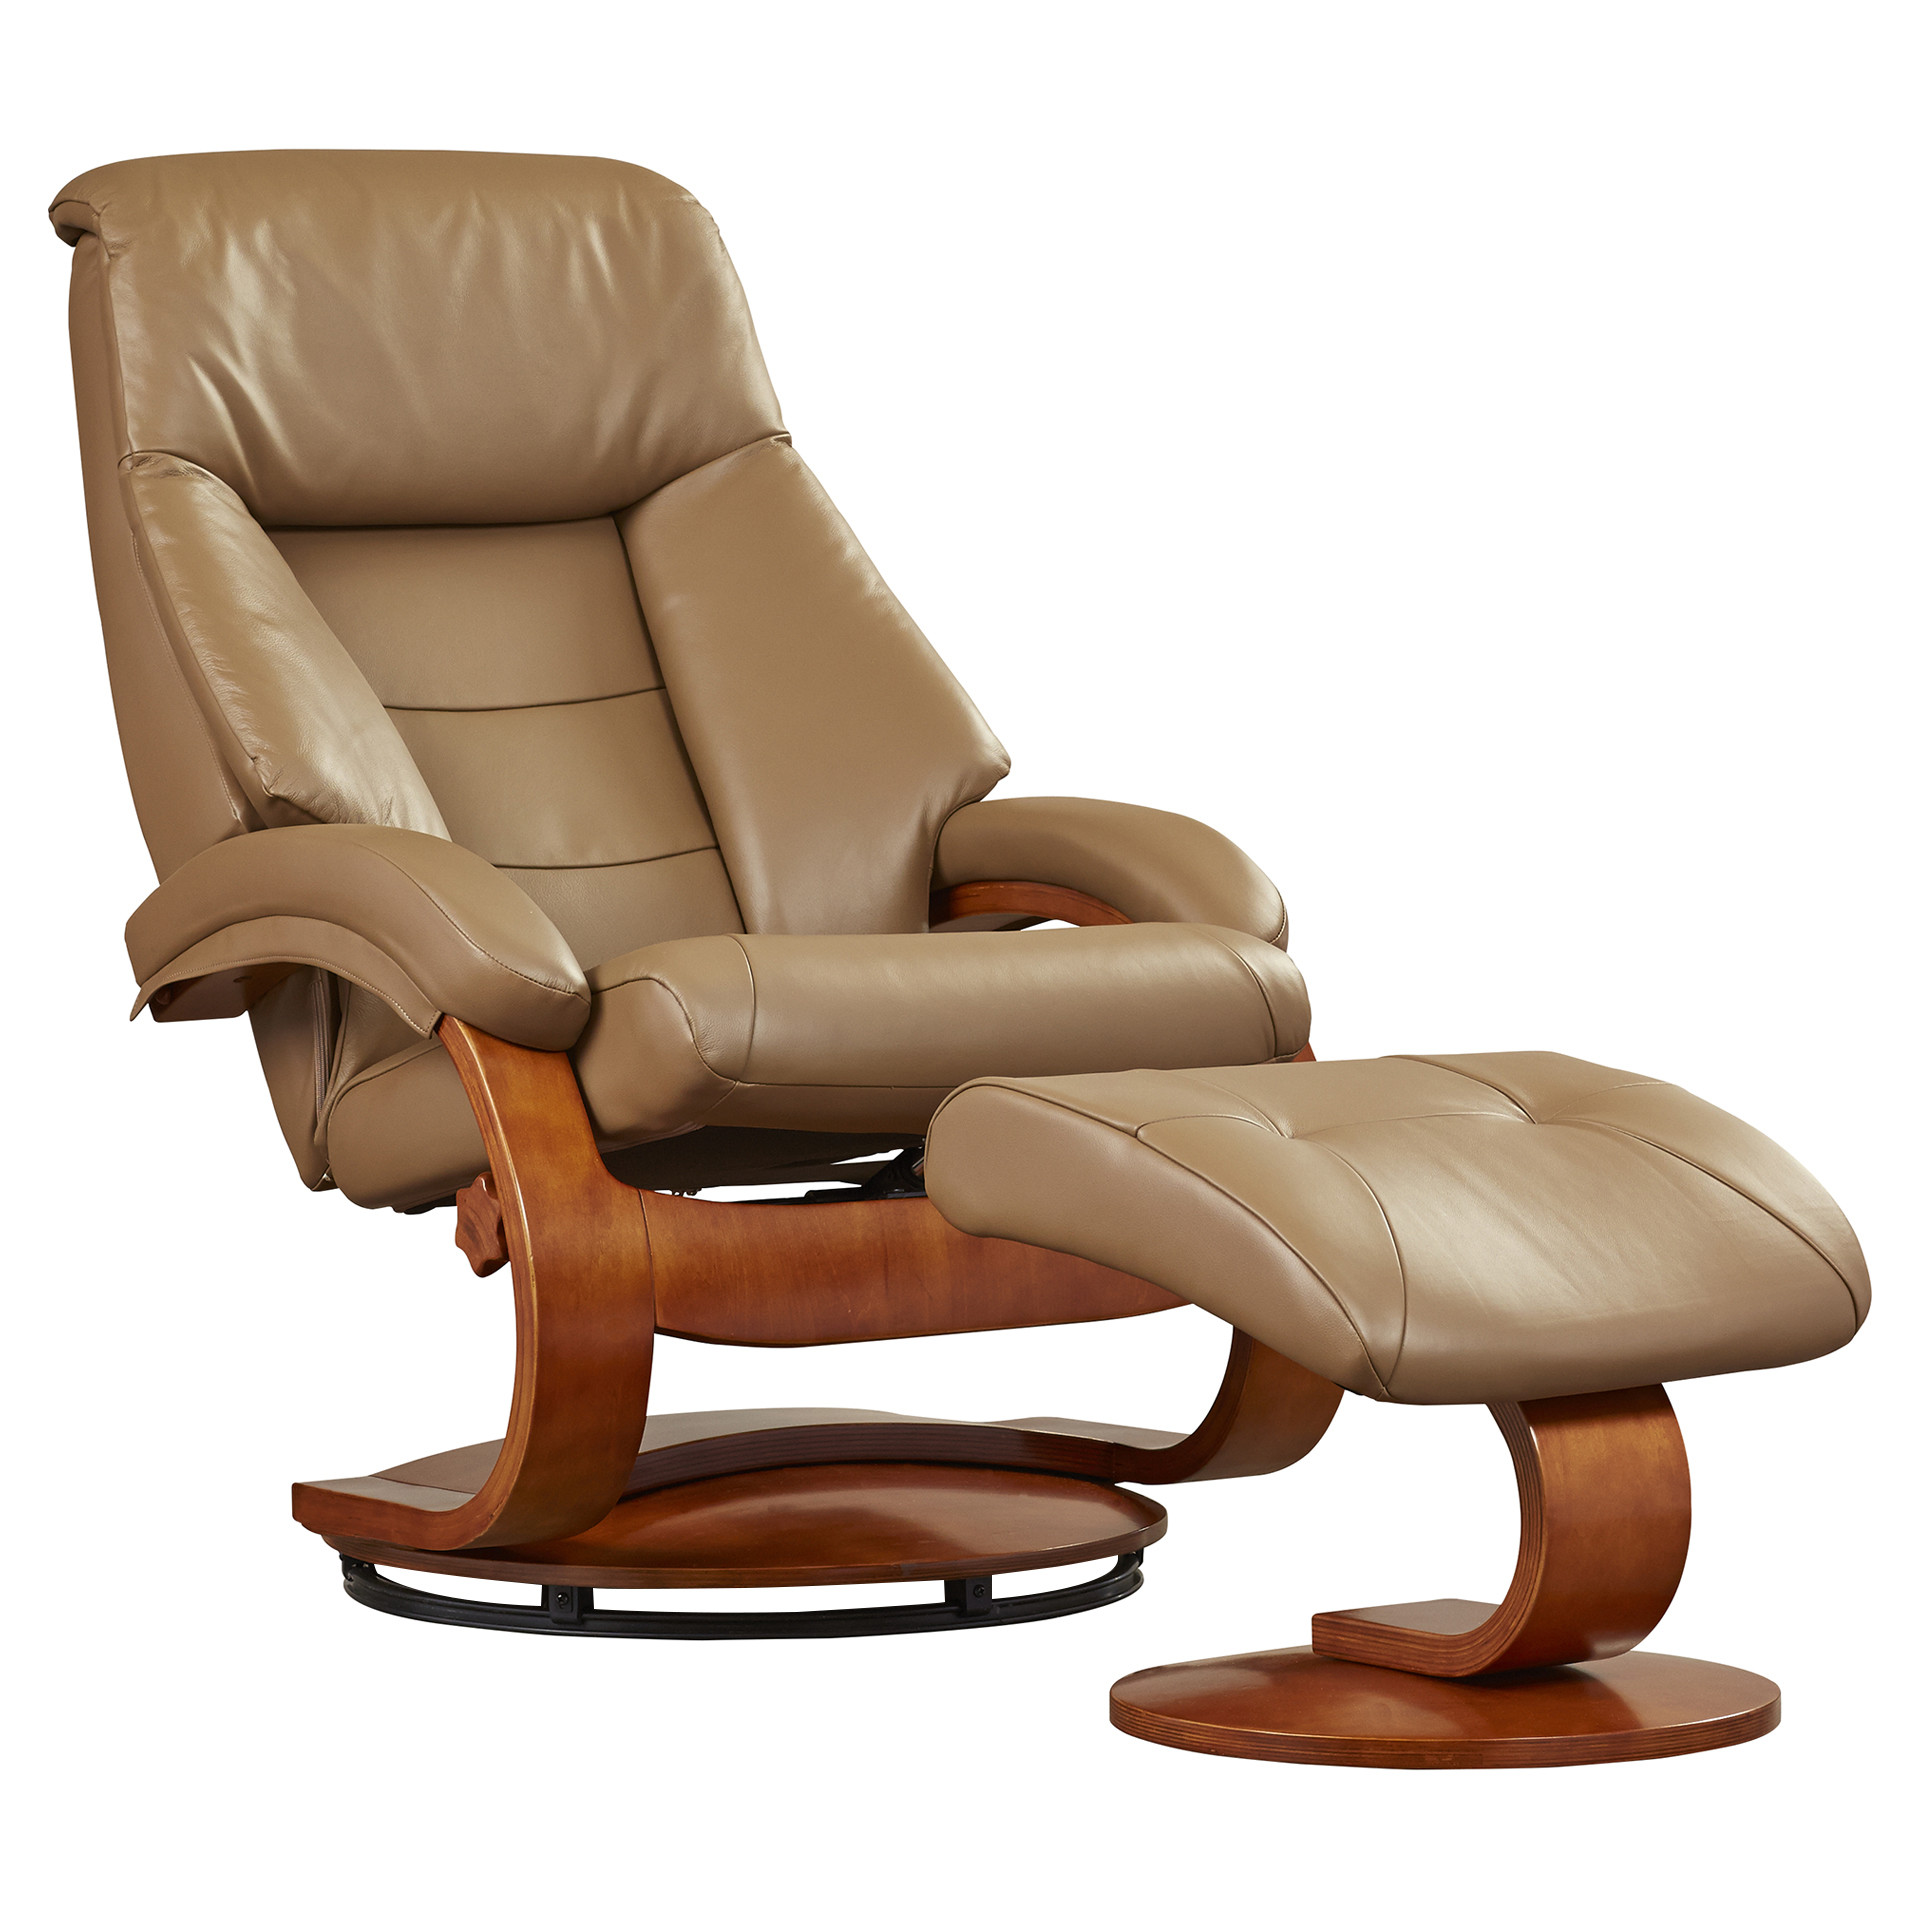 Sears Furniture Recliners | Sears Recliners | Lazy Boy Patio Furniture